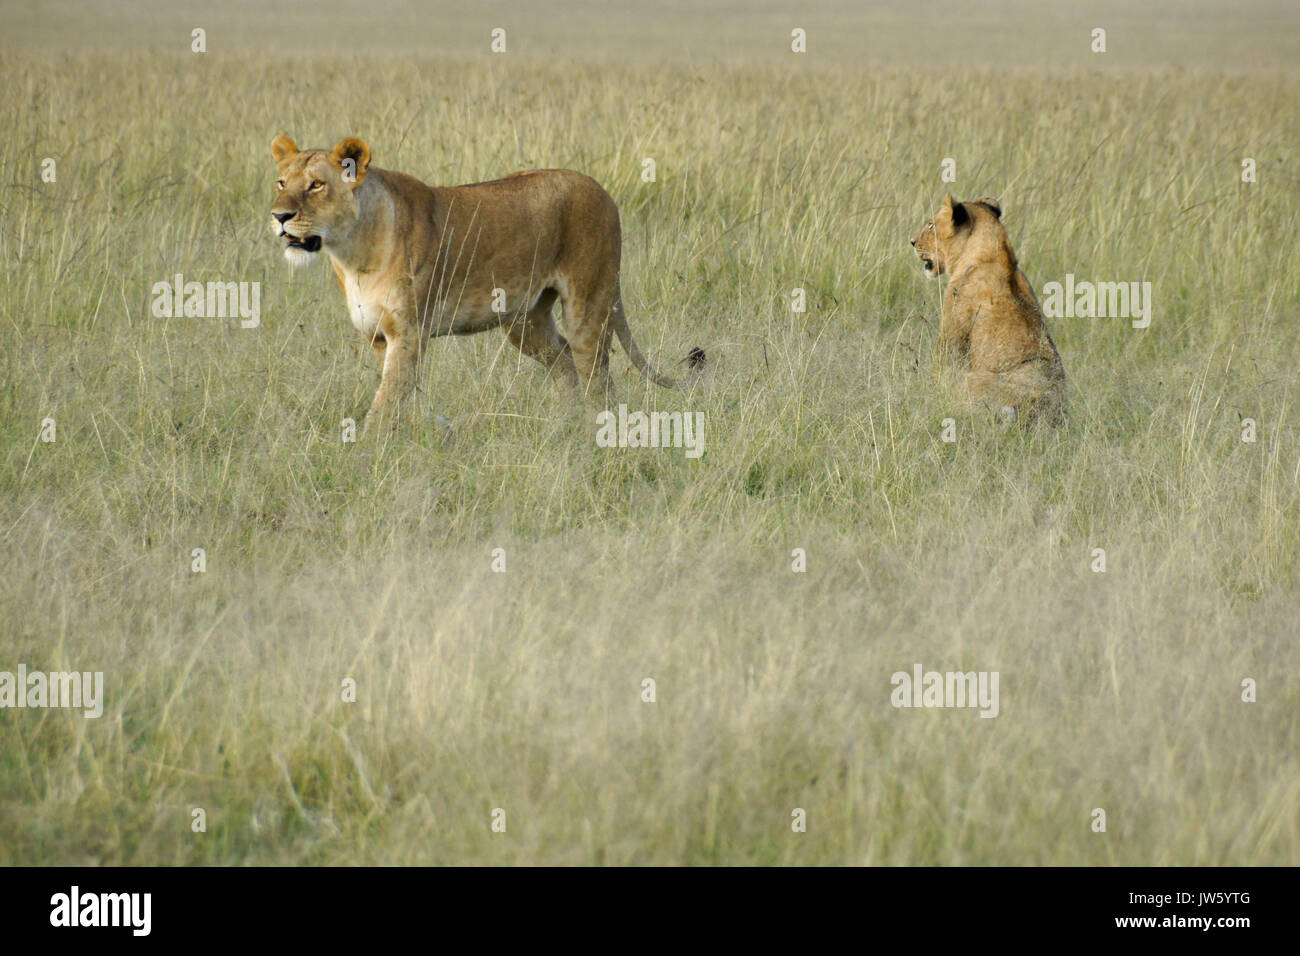 Two lionesses in long grass, Masai Mara Game Reserve, Kenya Stock Photo